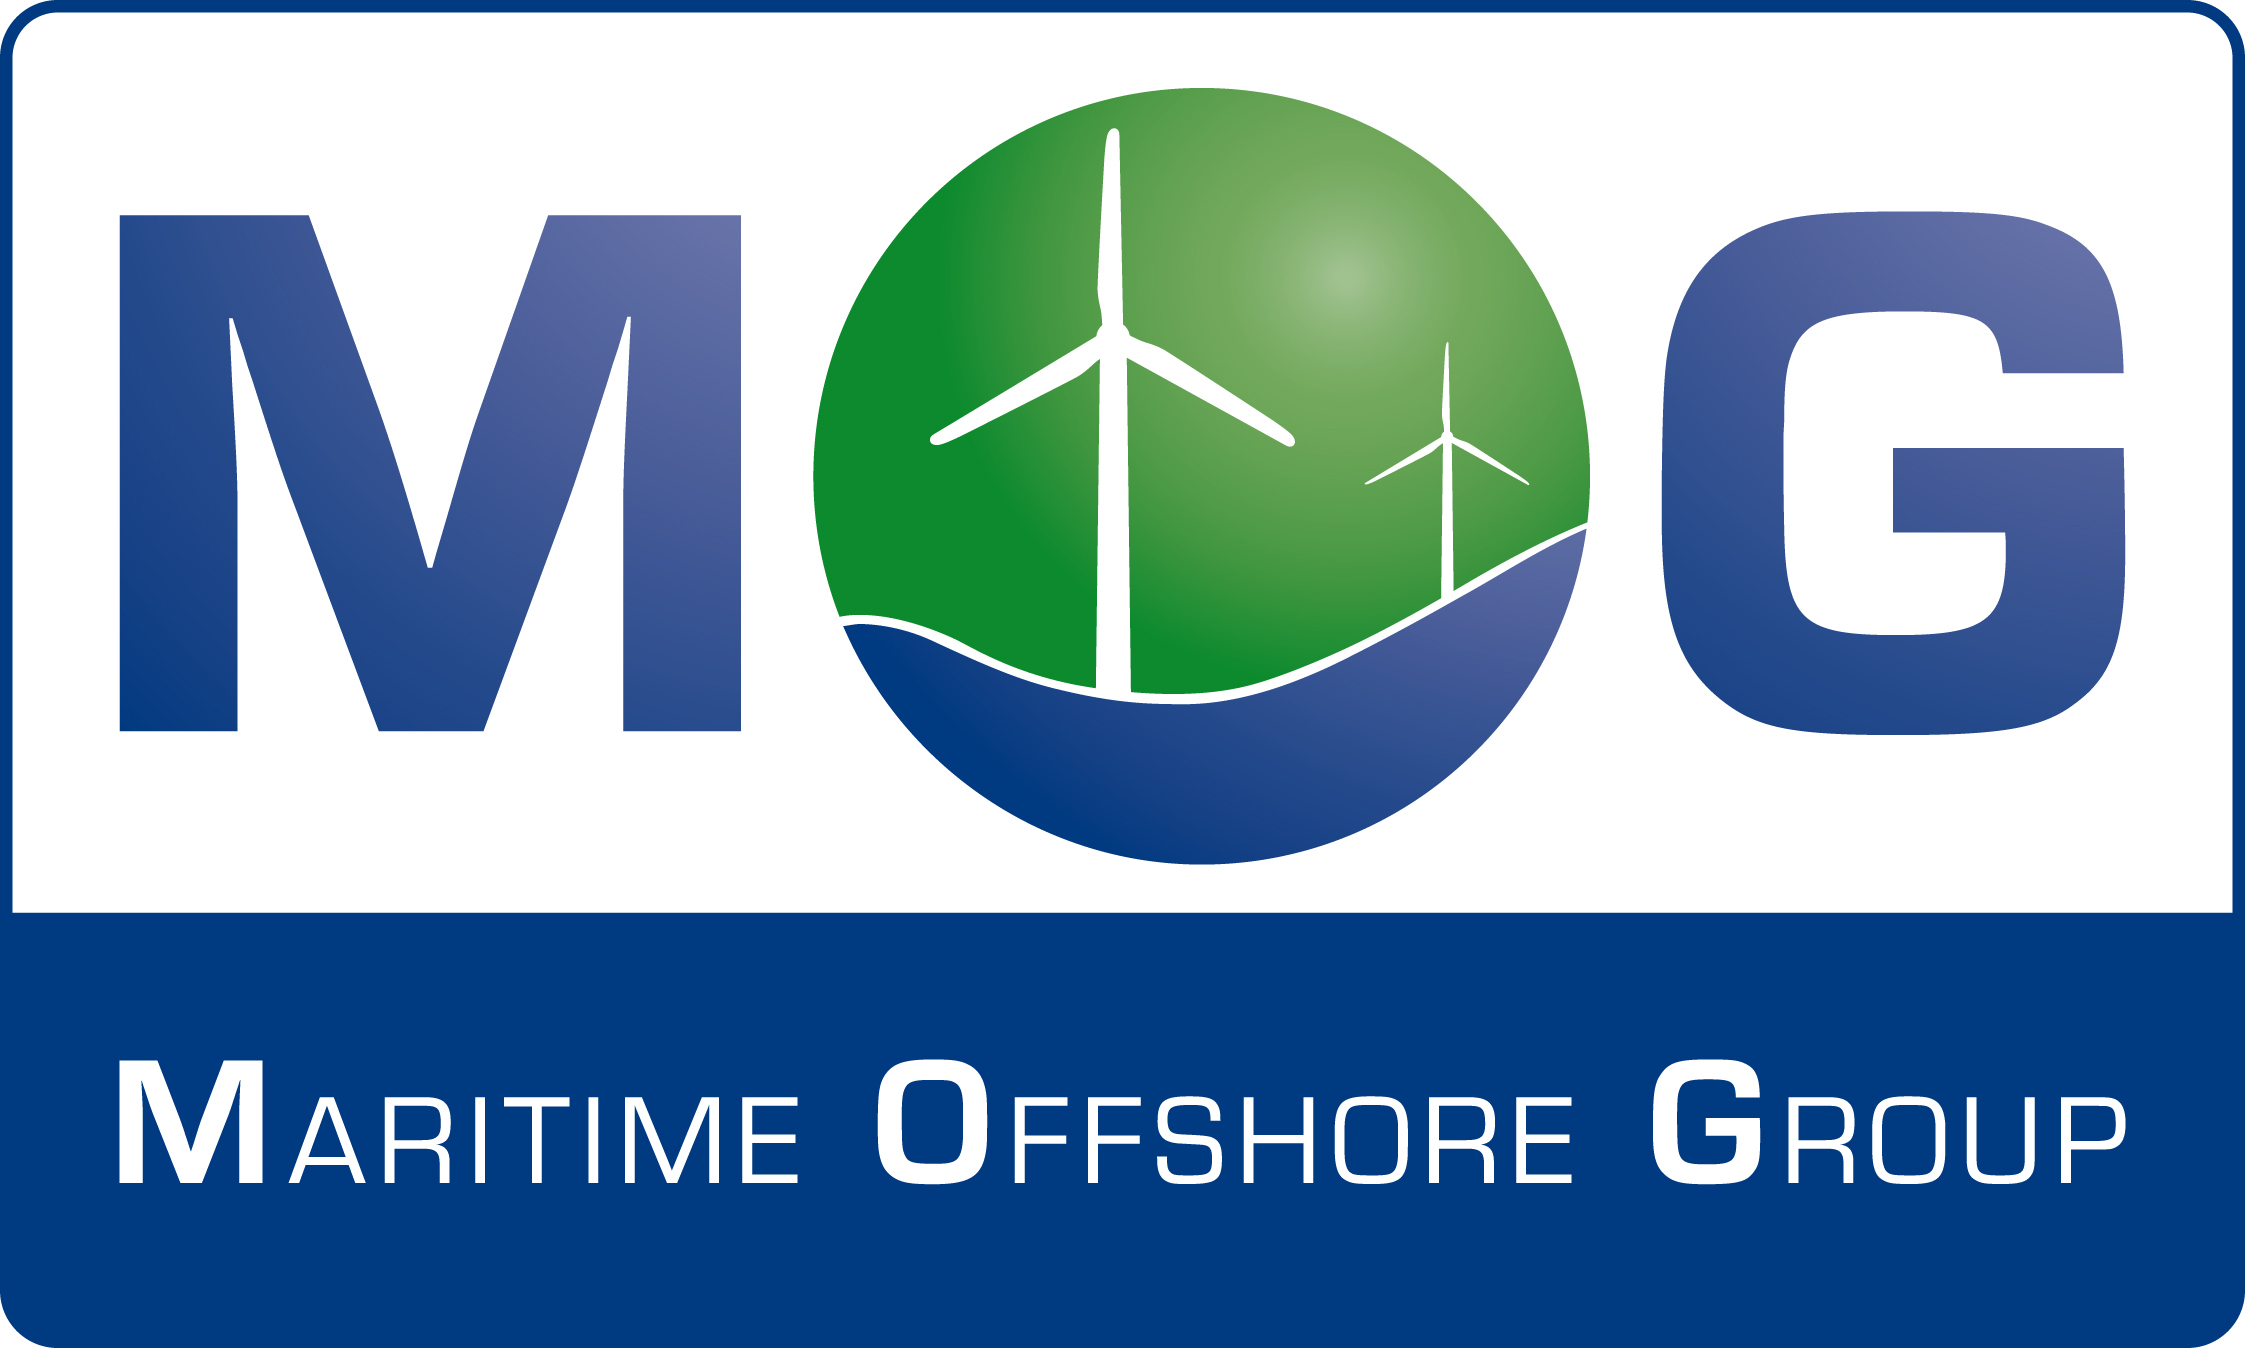 Maritime Offshore Group GmbH